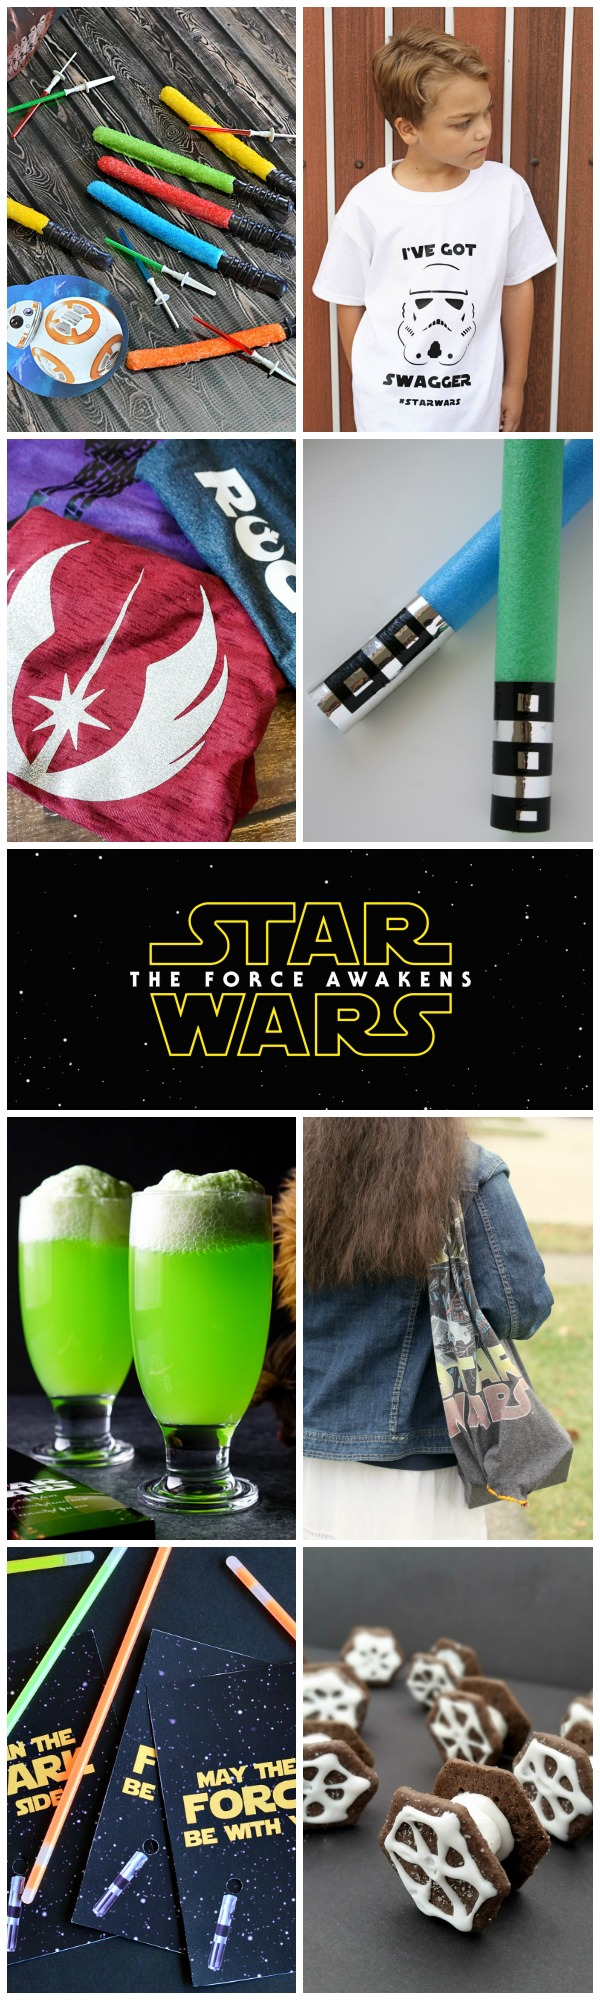 Star Wars- The Force Awakens - 15 Crafts & Recipes